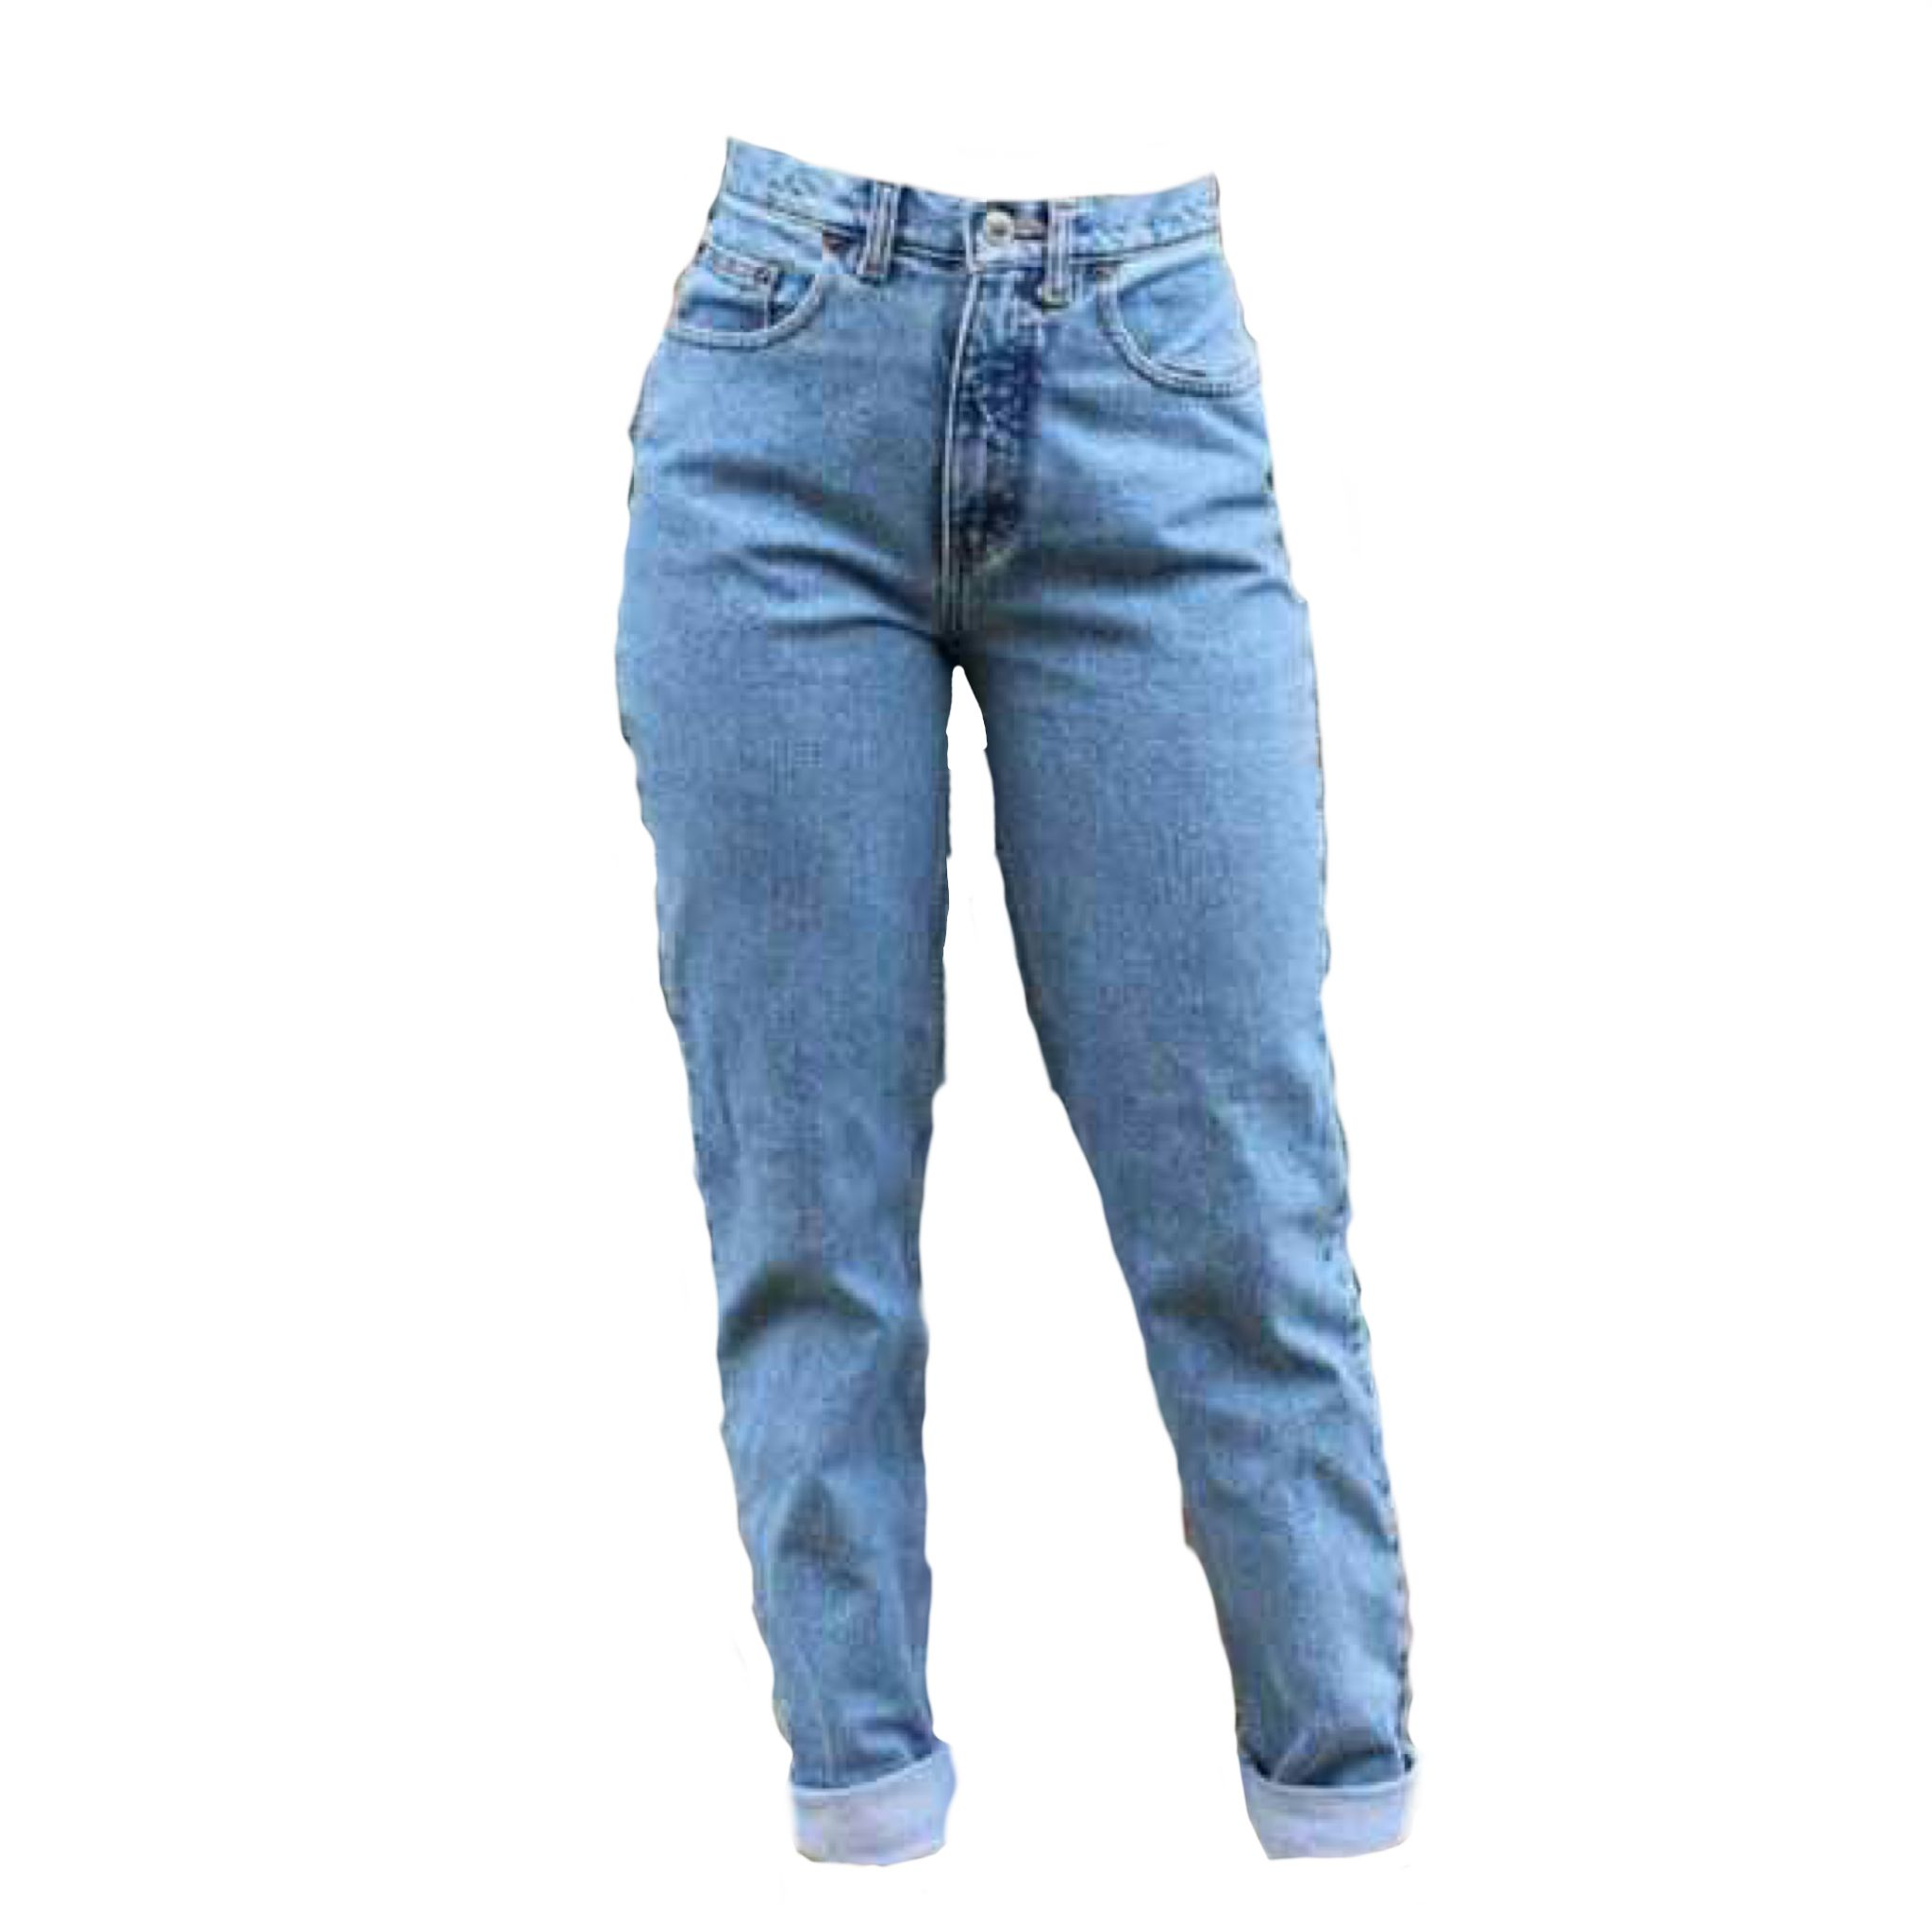 Pin By A Loser Since Birth On Items Aesthetic Clothes Ripped Mom Jeans Clothes